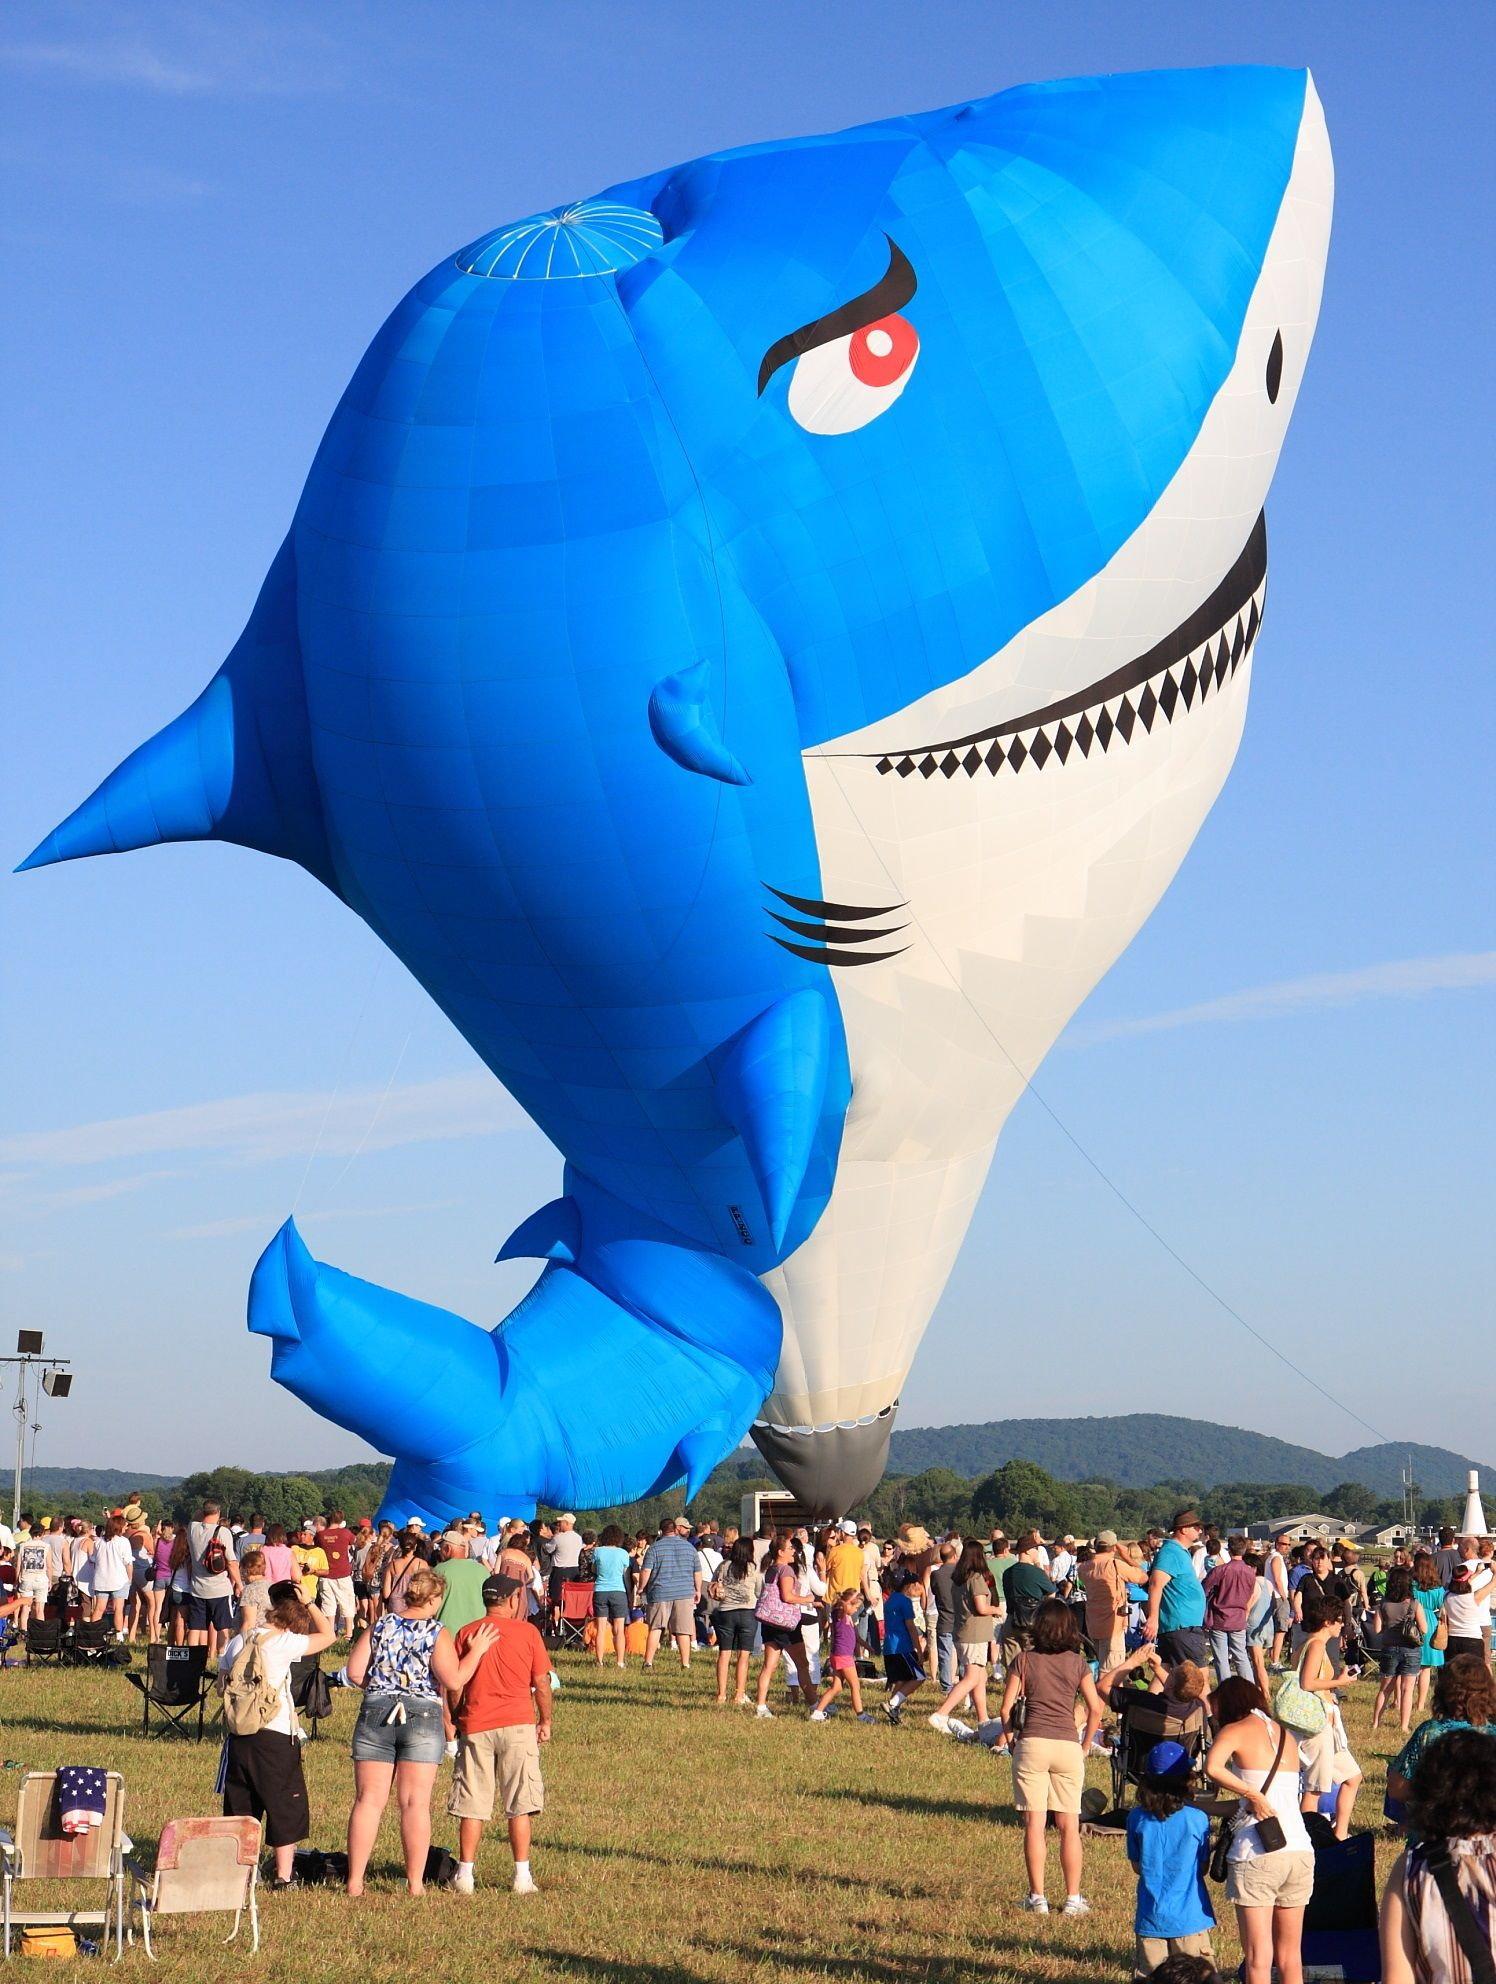 It's SharkWeek! Who remembers this special shape balloon